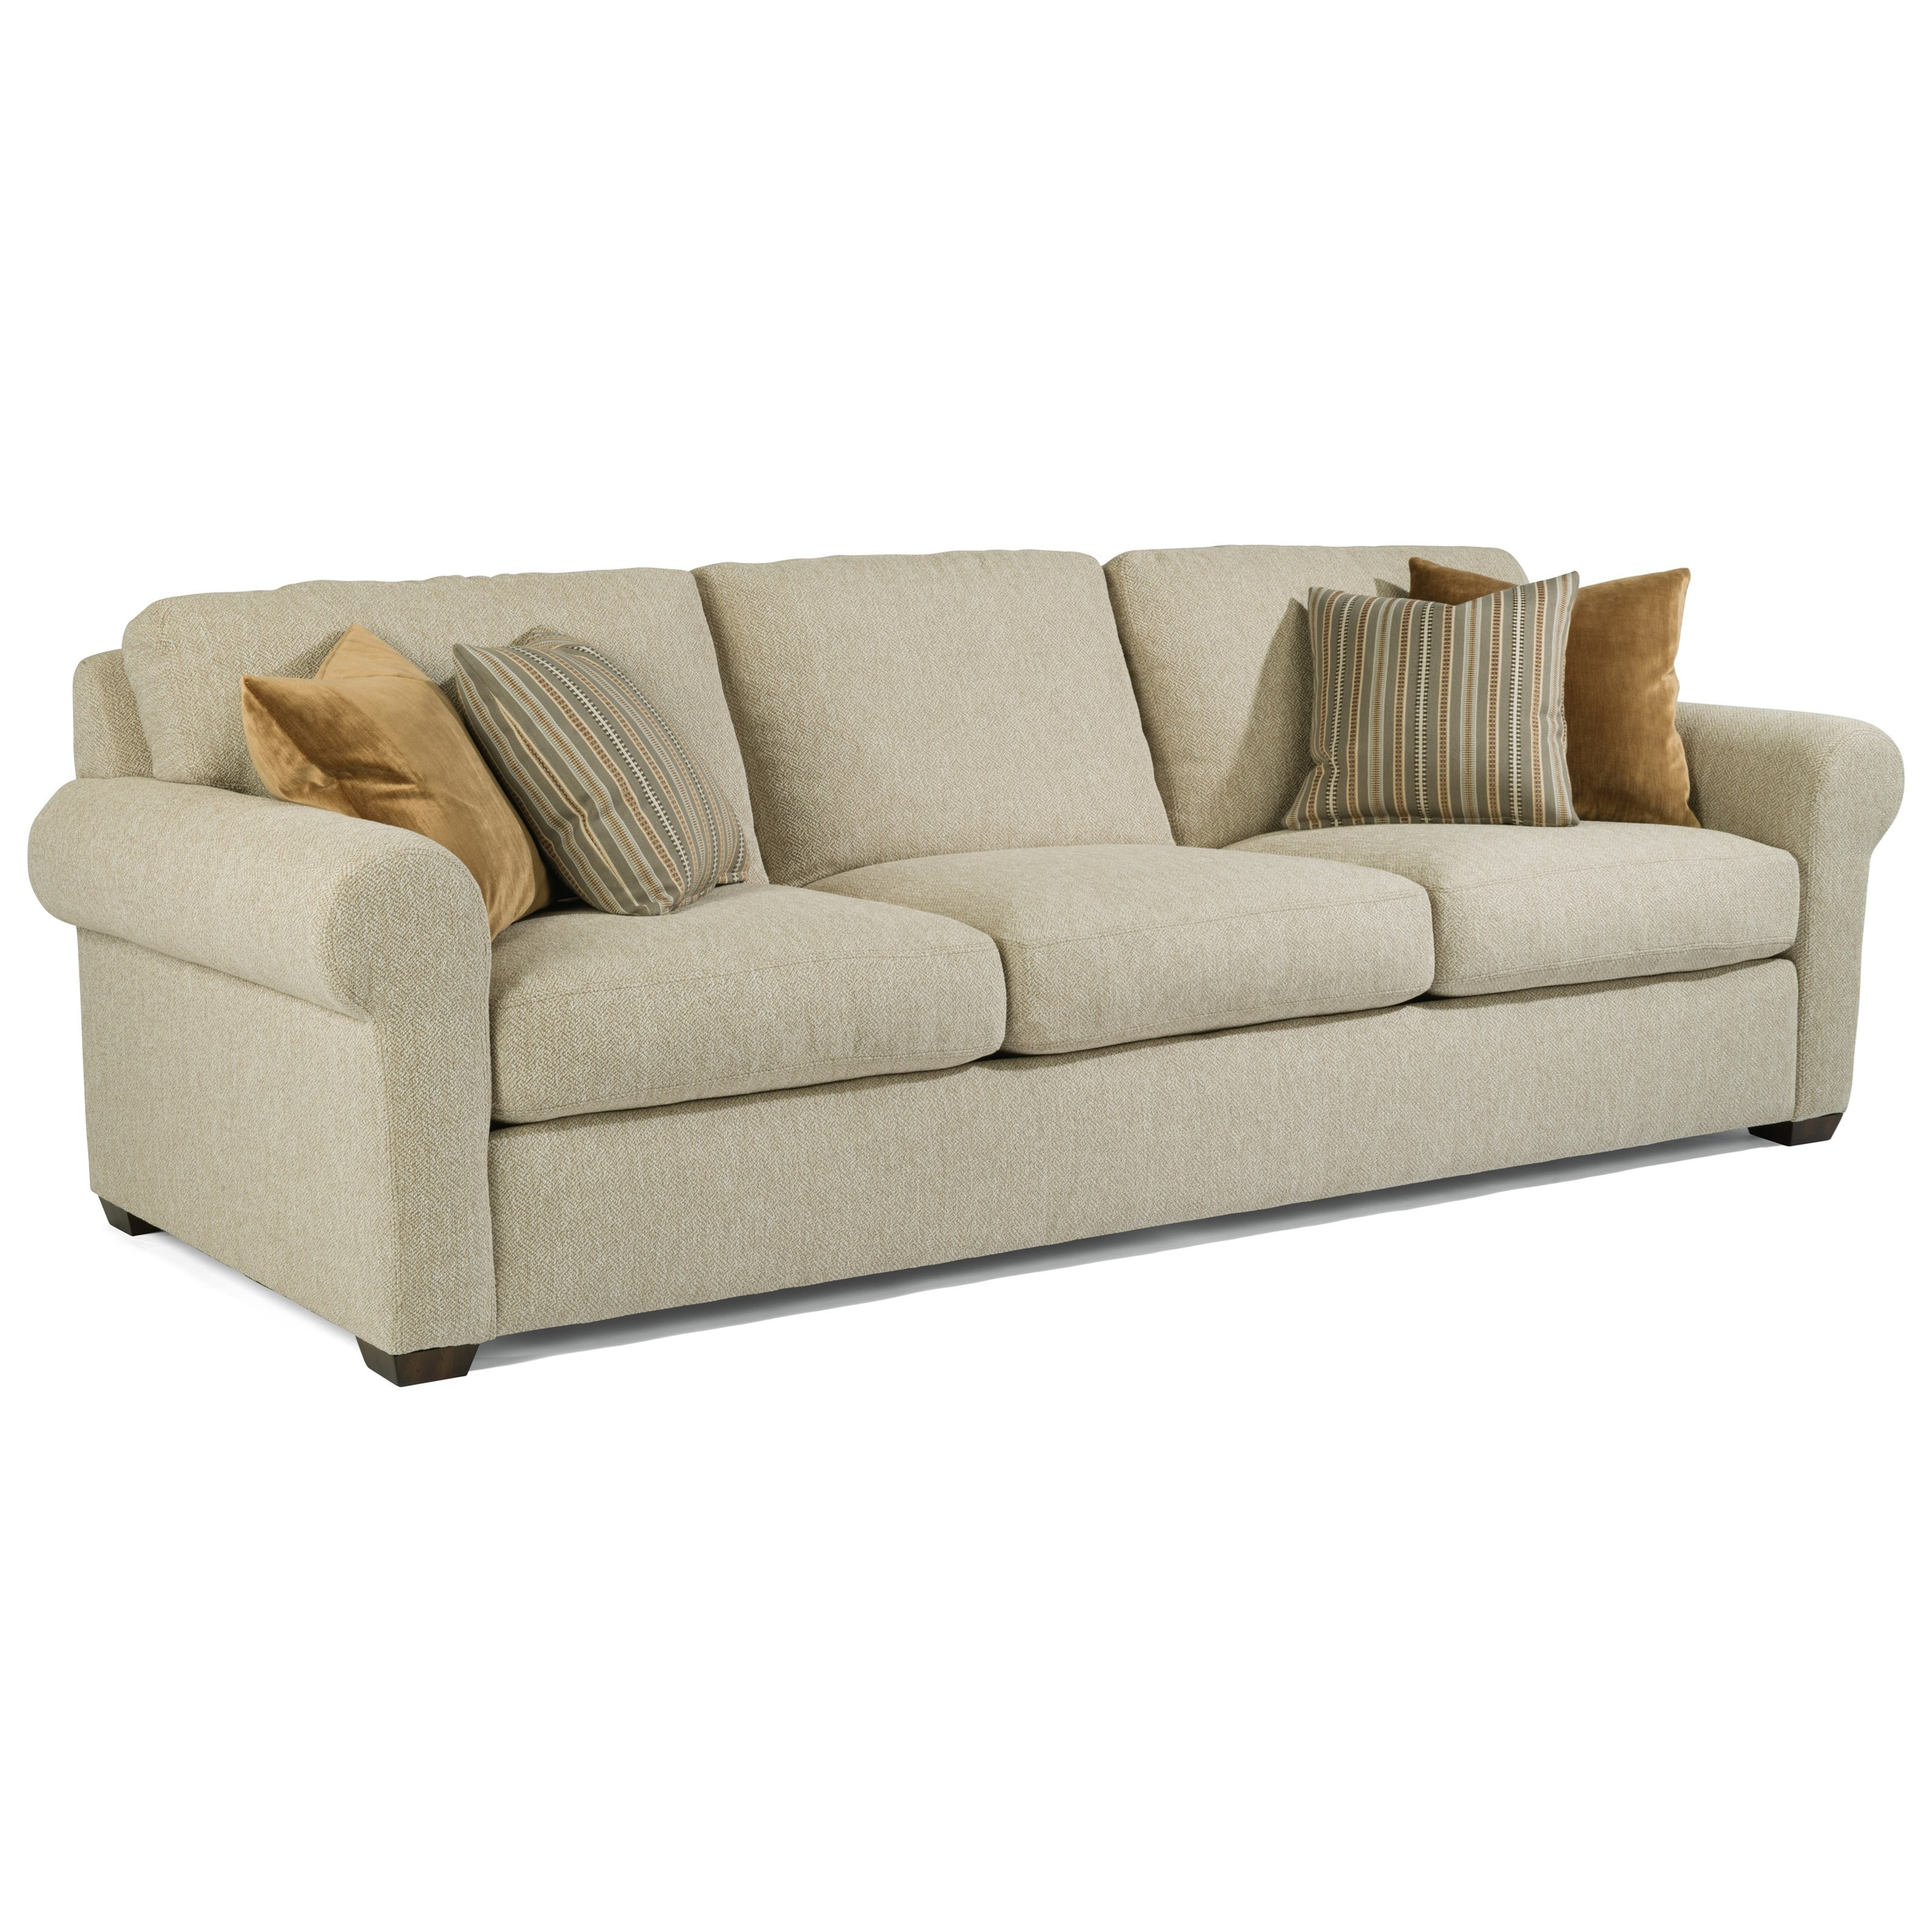 "Randall 105"" Three-Cushion Sofa by Flexsteel at Mueller Furniture"